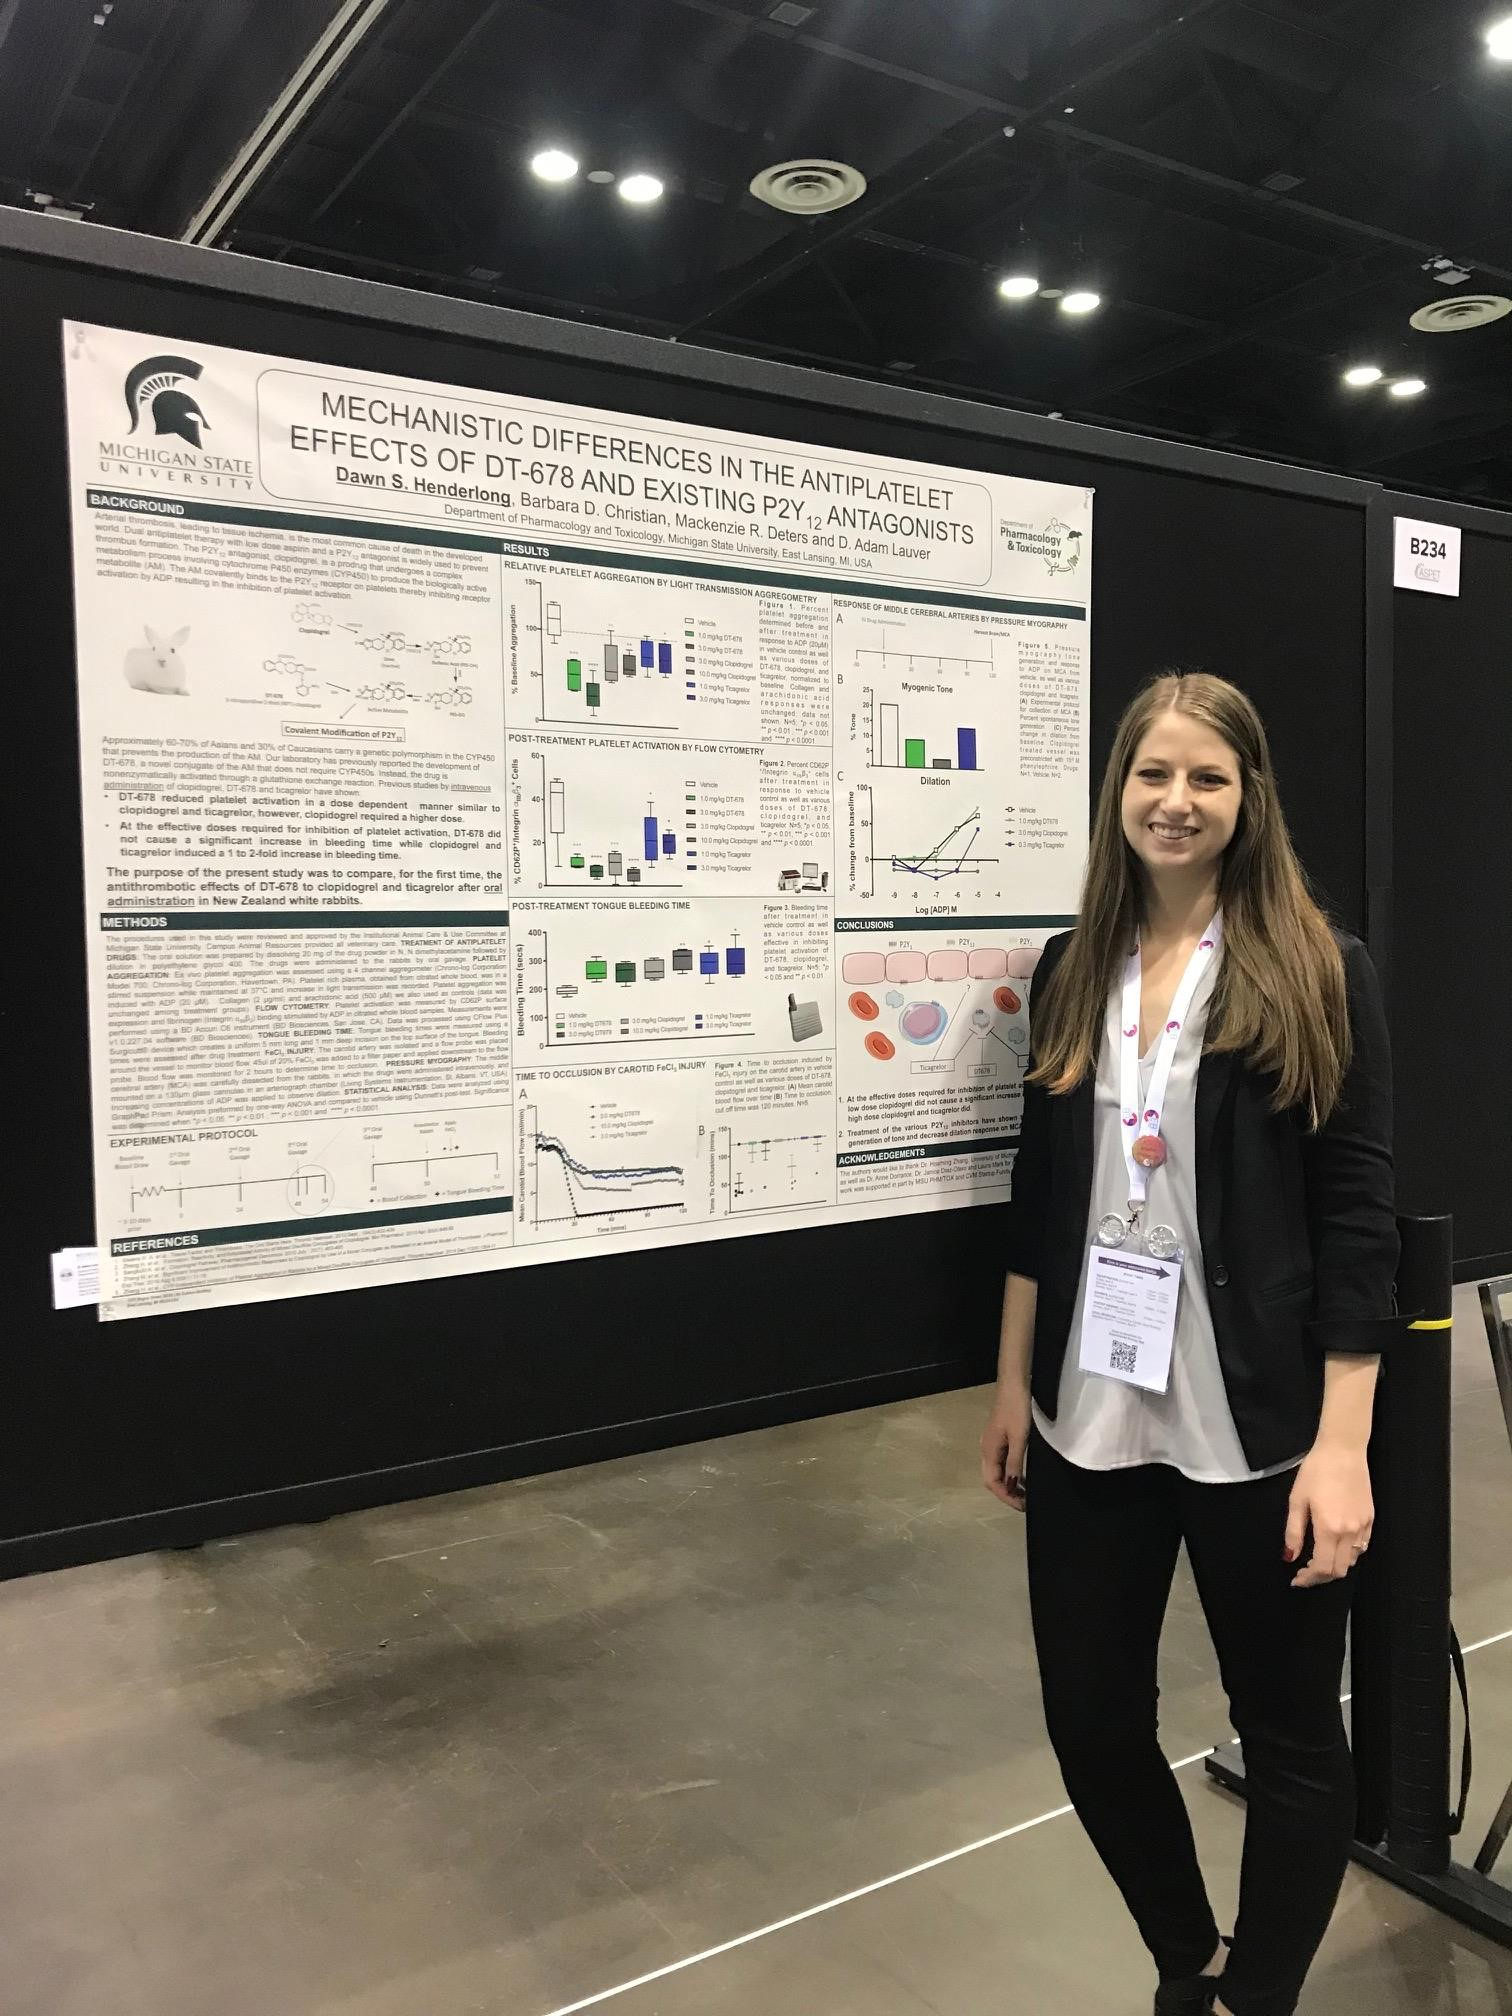 """Tuesday morning I presented my poster entitled, """"Mechanistic Differences in the Antiplatelet Effects of DT-678 and Existing P2Y12 Antagonists."""""""